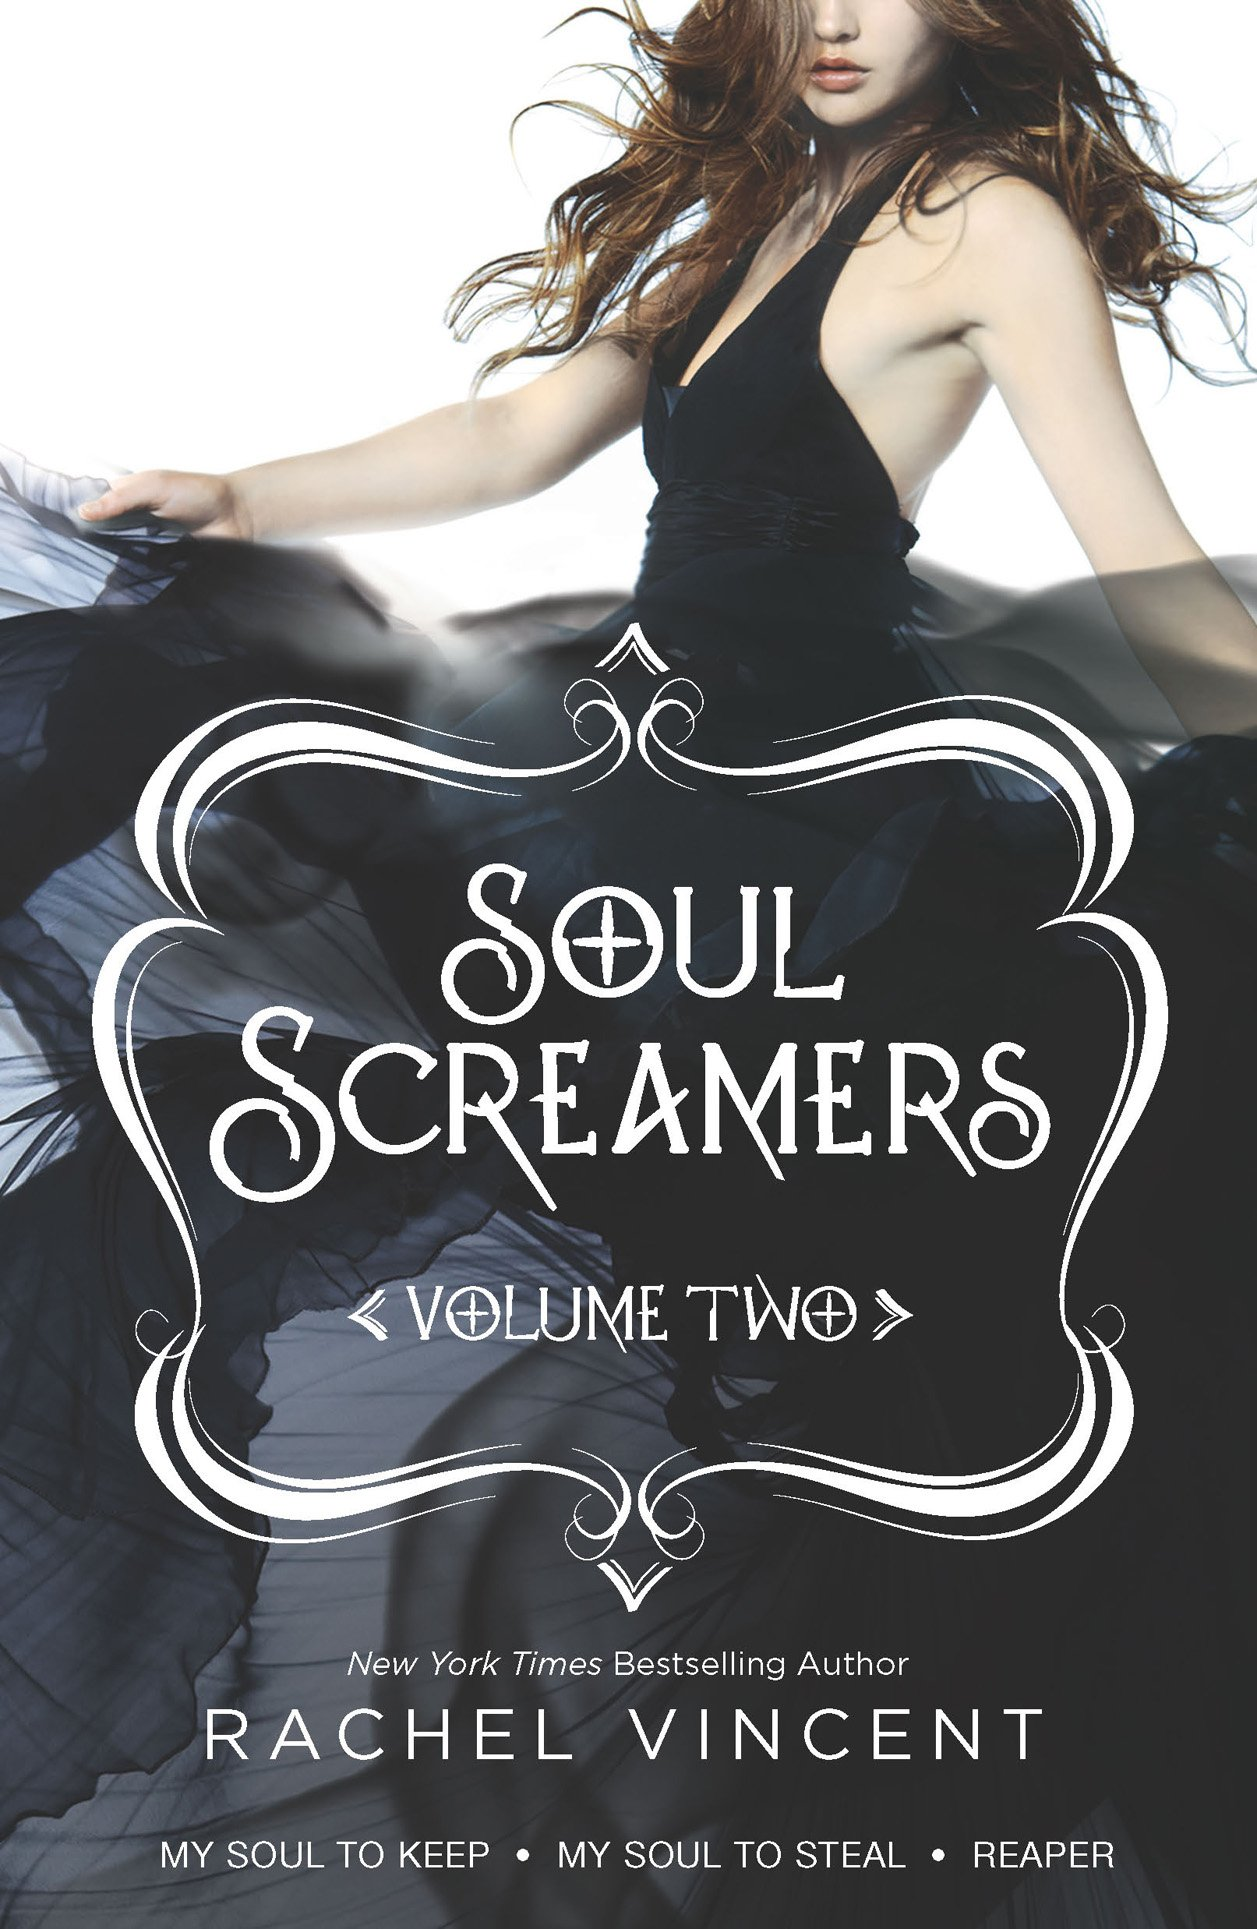 My Soul To Save Soul Screamers 2 By Rachel Vincent